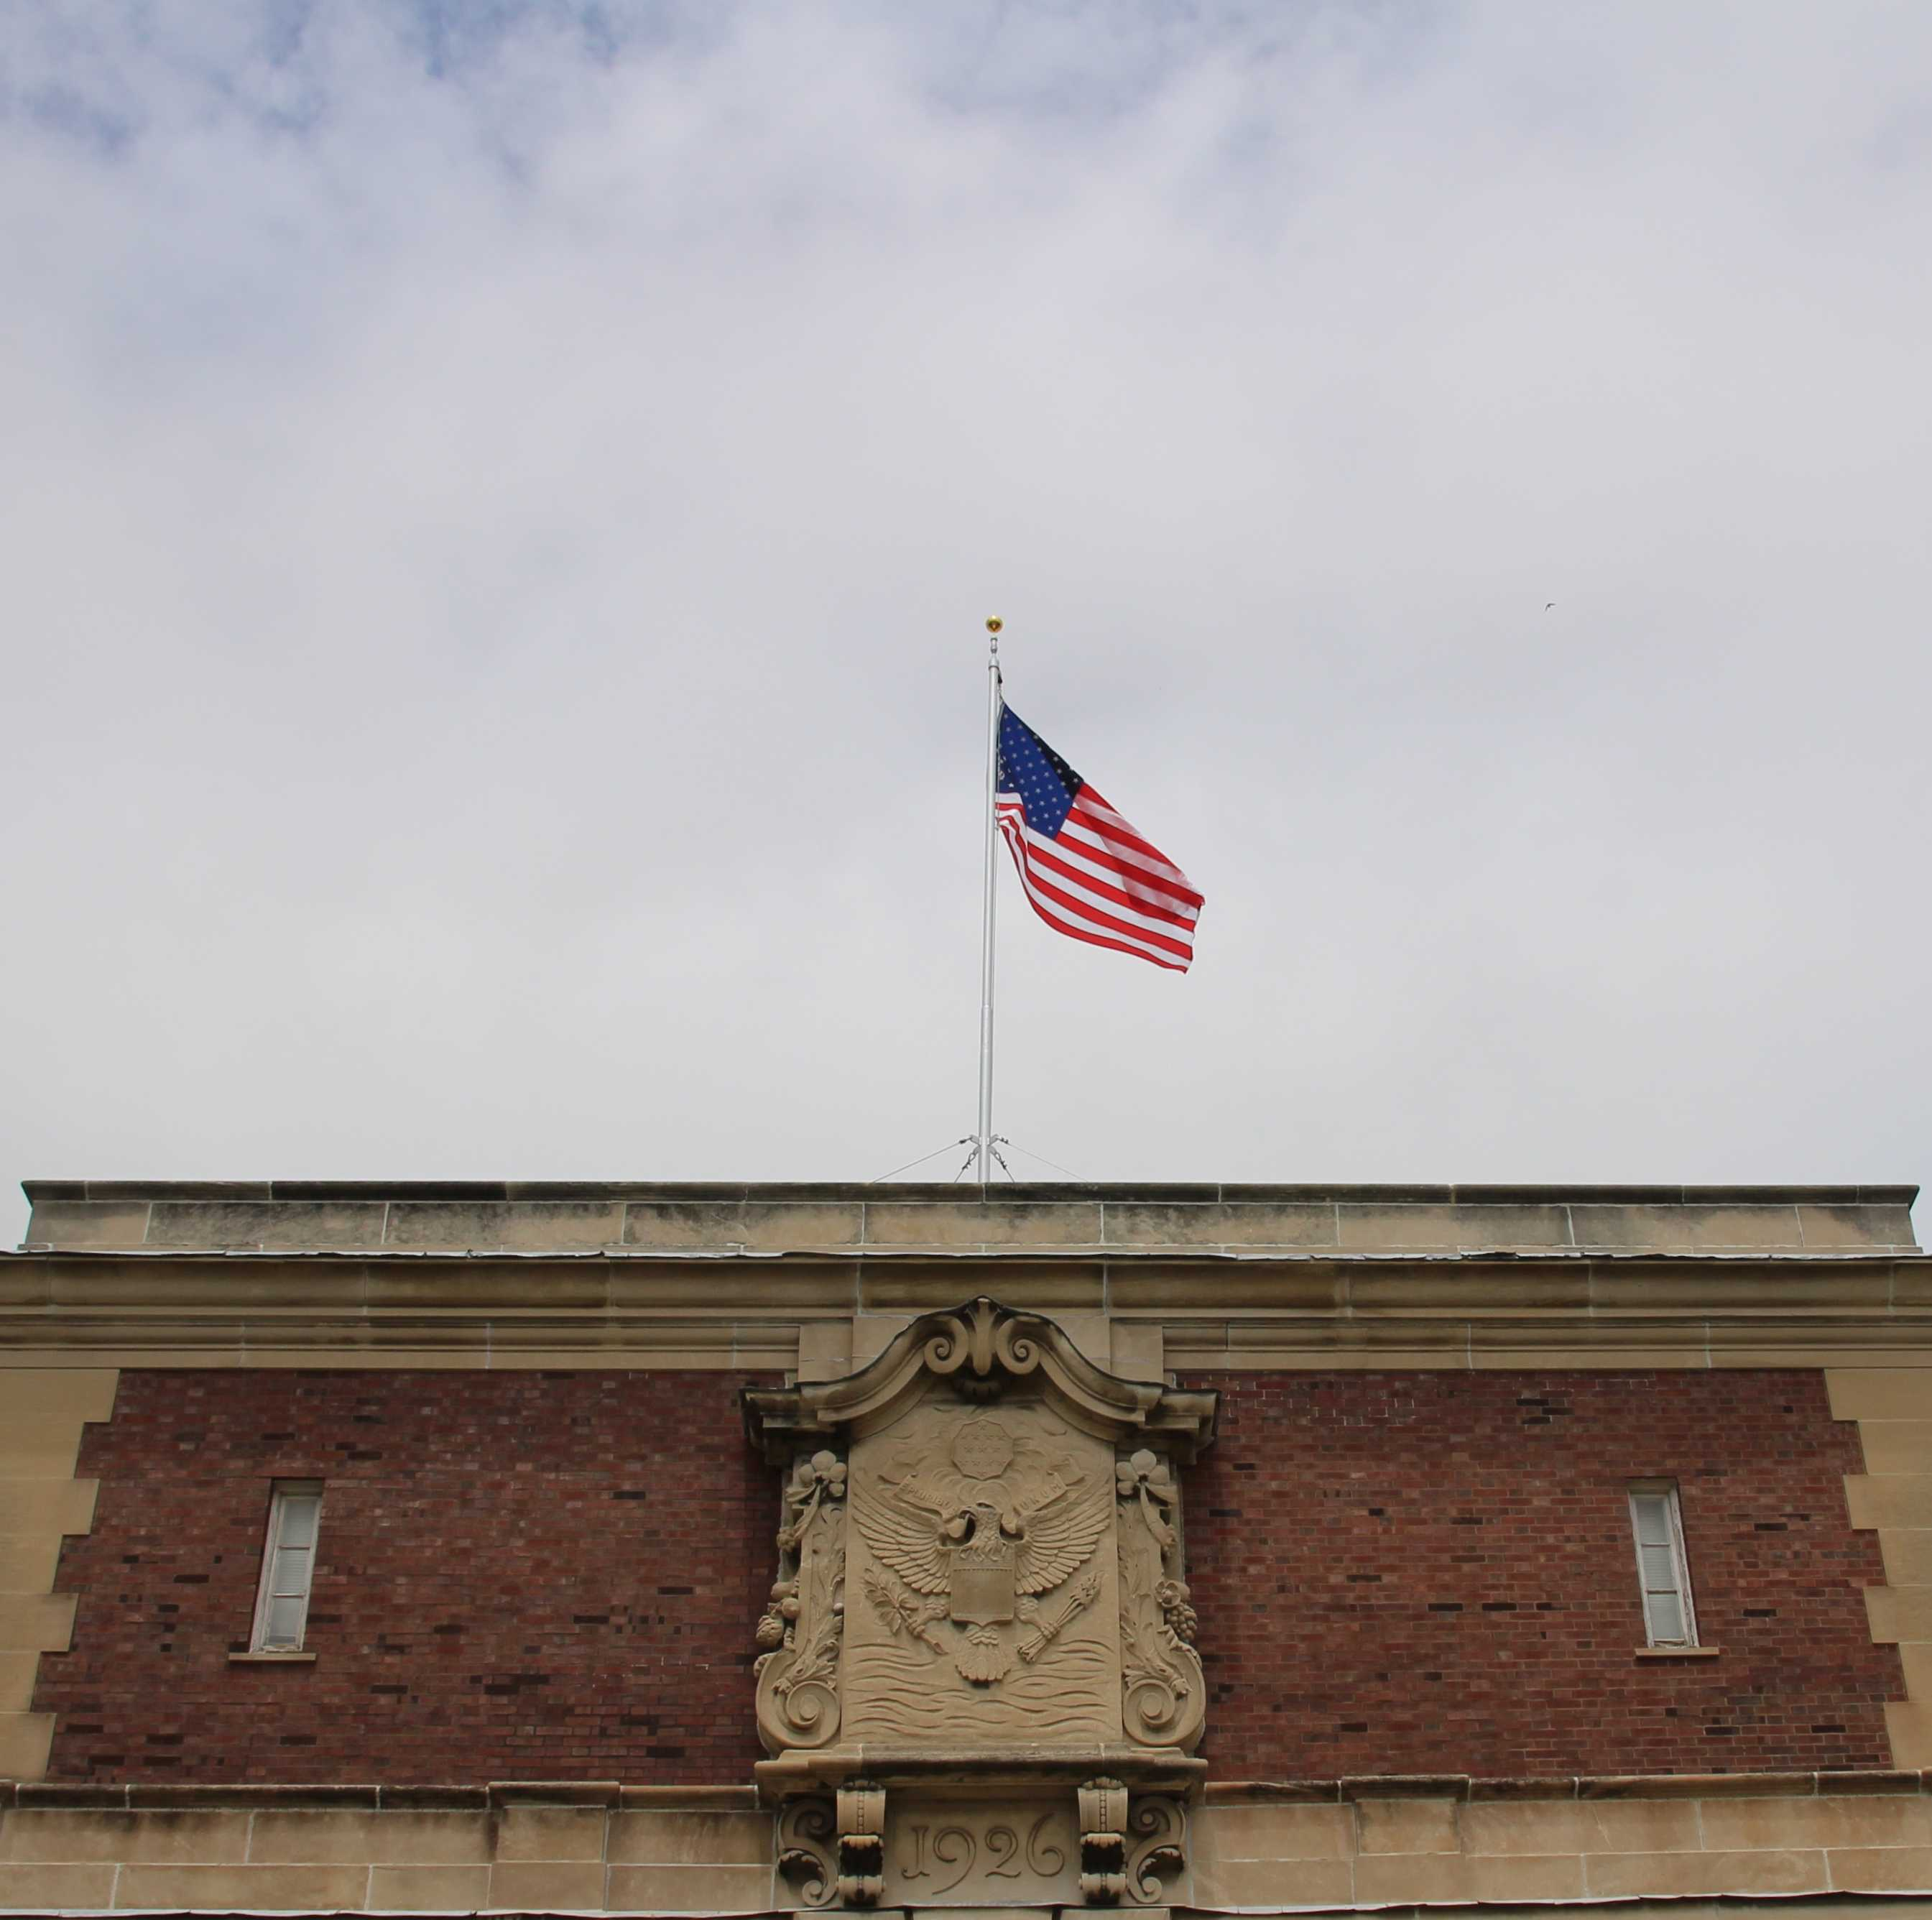 Old+Glory+was+raised+again+on+the+south+side+of+the+Armory+on+Tuesday+morning.+The+flag+had+been+out+of+service+for+nearly+40+years+for+unknown+reasons.%26nbsp%3B